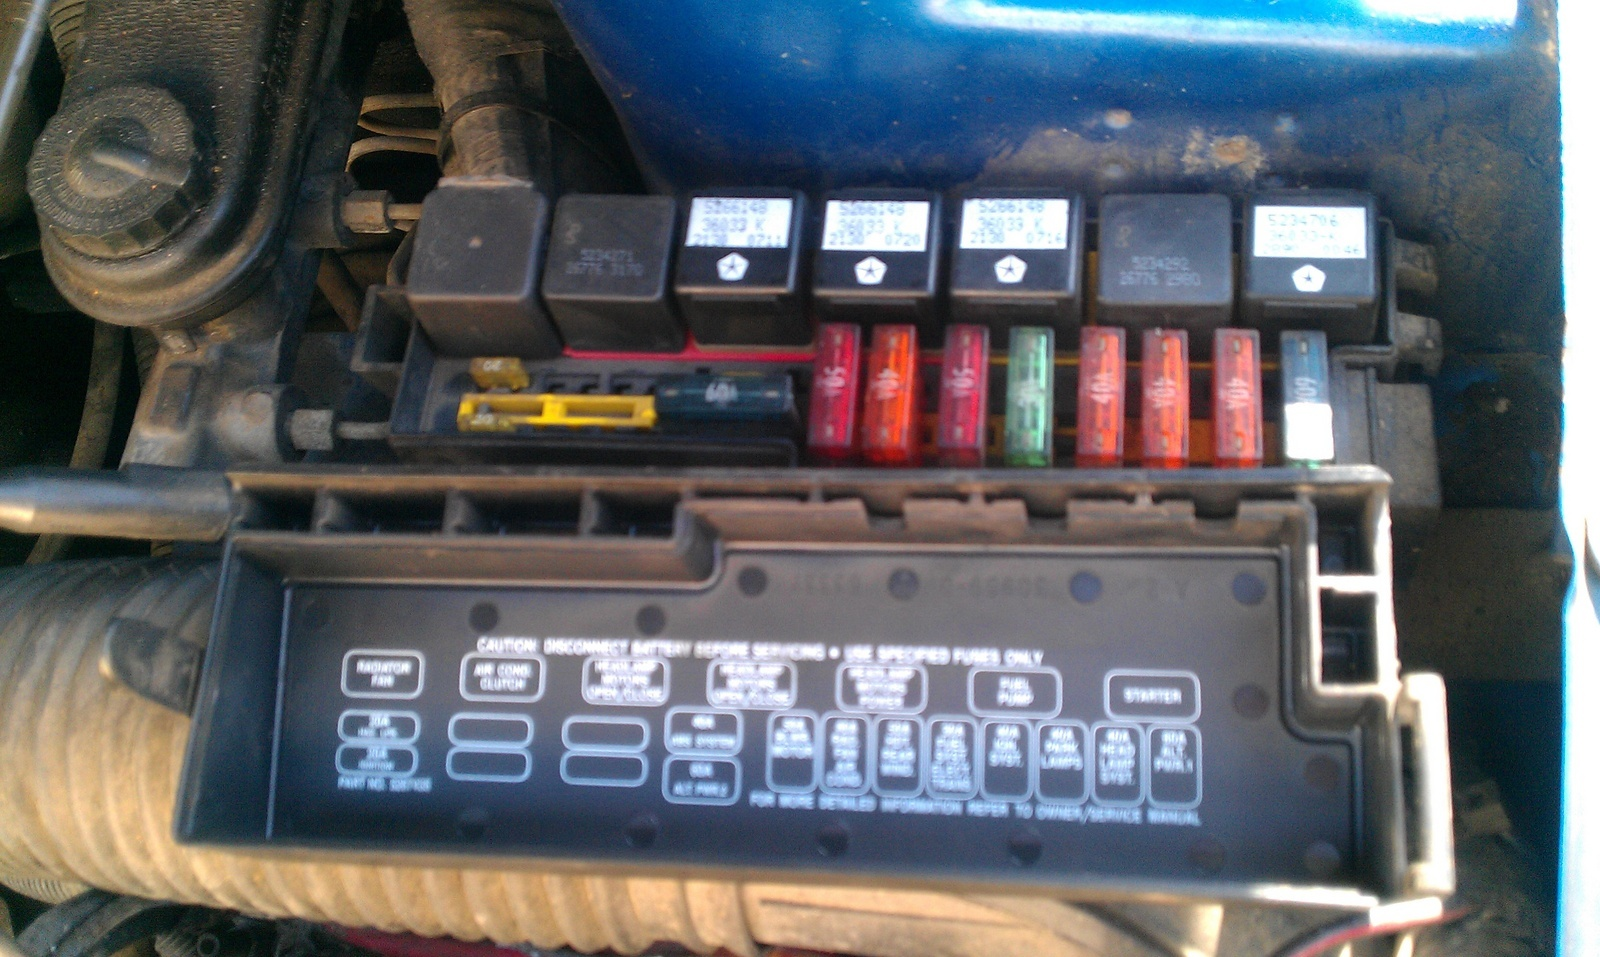 96 civic headlight wiring diagram 2006 kawasaki mule 3010 dodge daytona questions - my fuel pump stays on after i turn the car off what could be probl ...